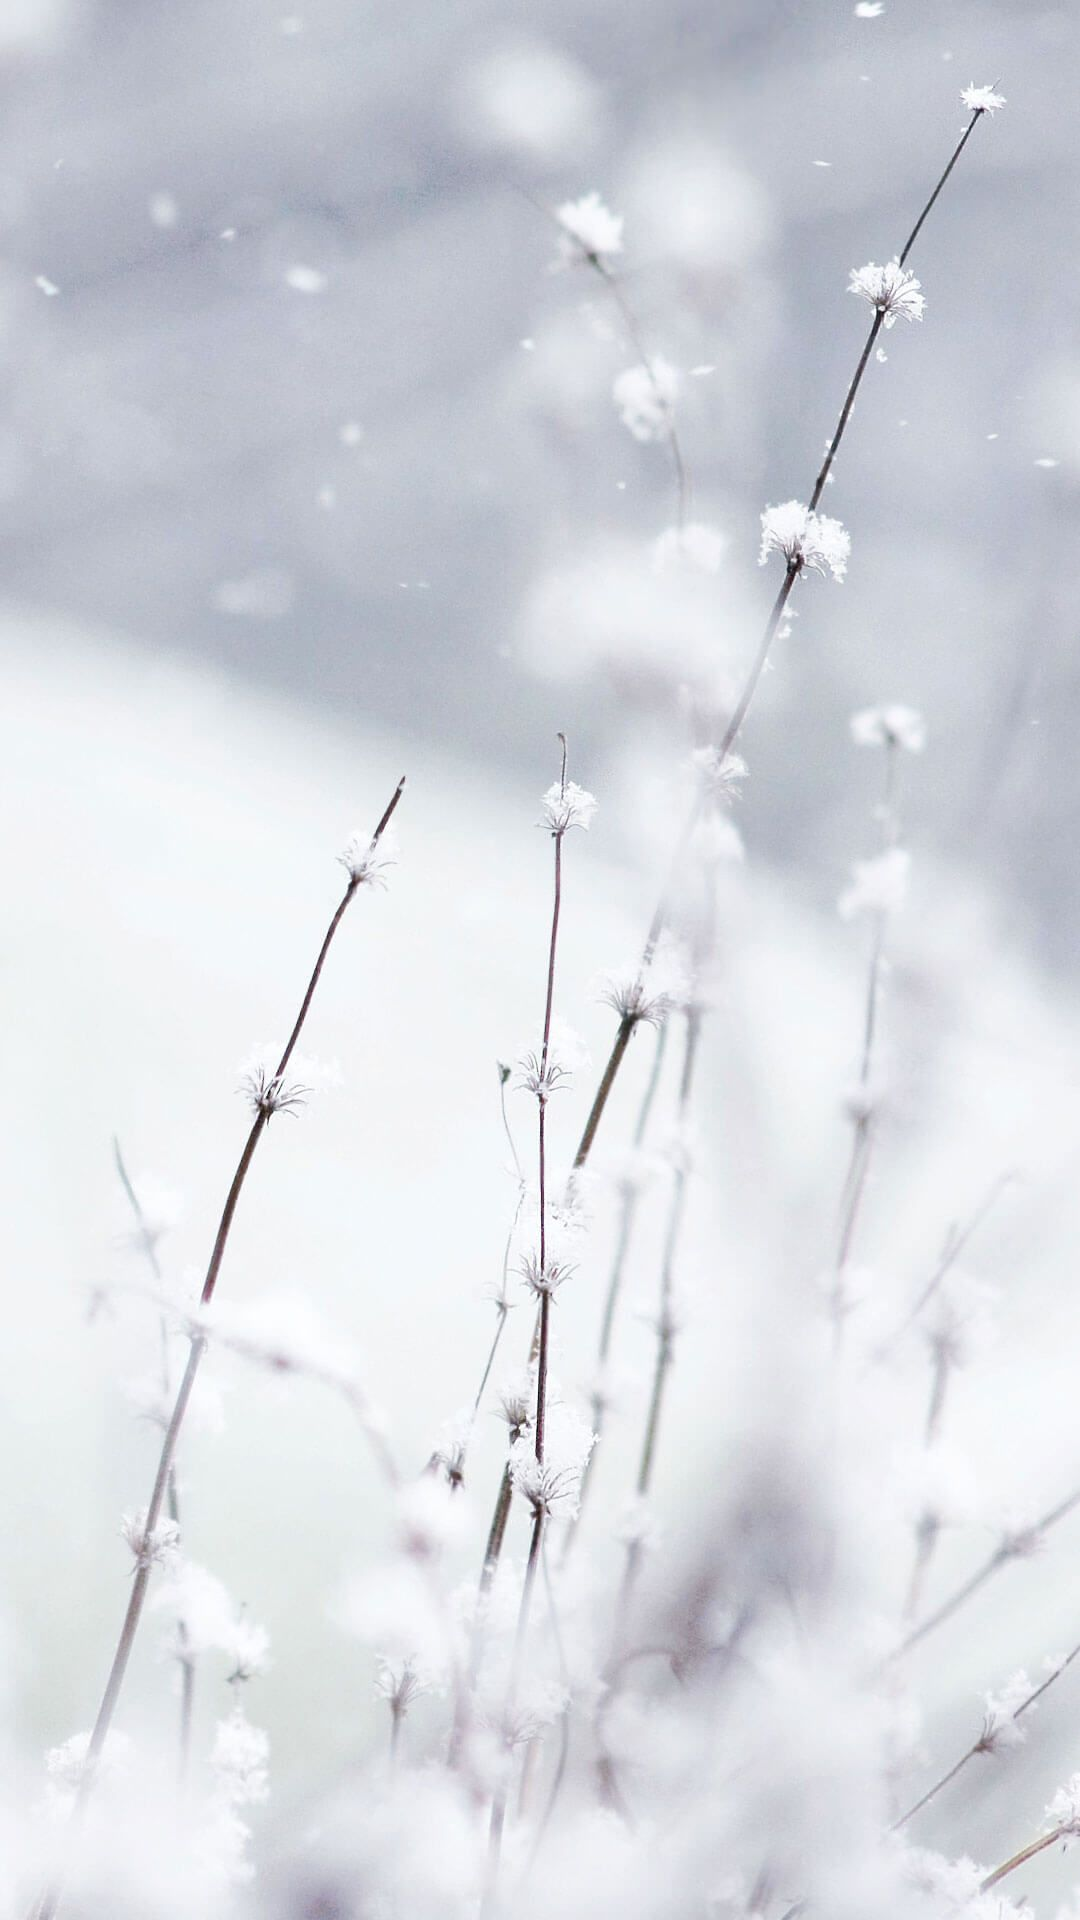 Winter Snow Wallpapers In 2019 Snow Wallpaper Iphone